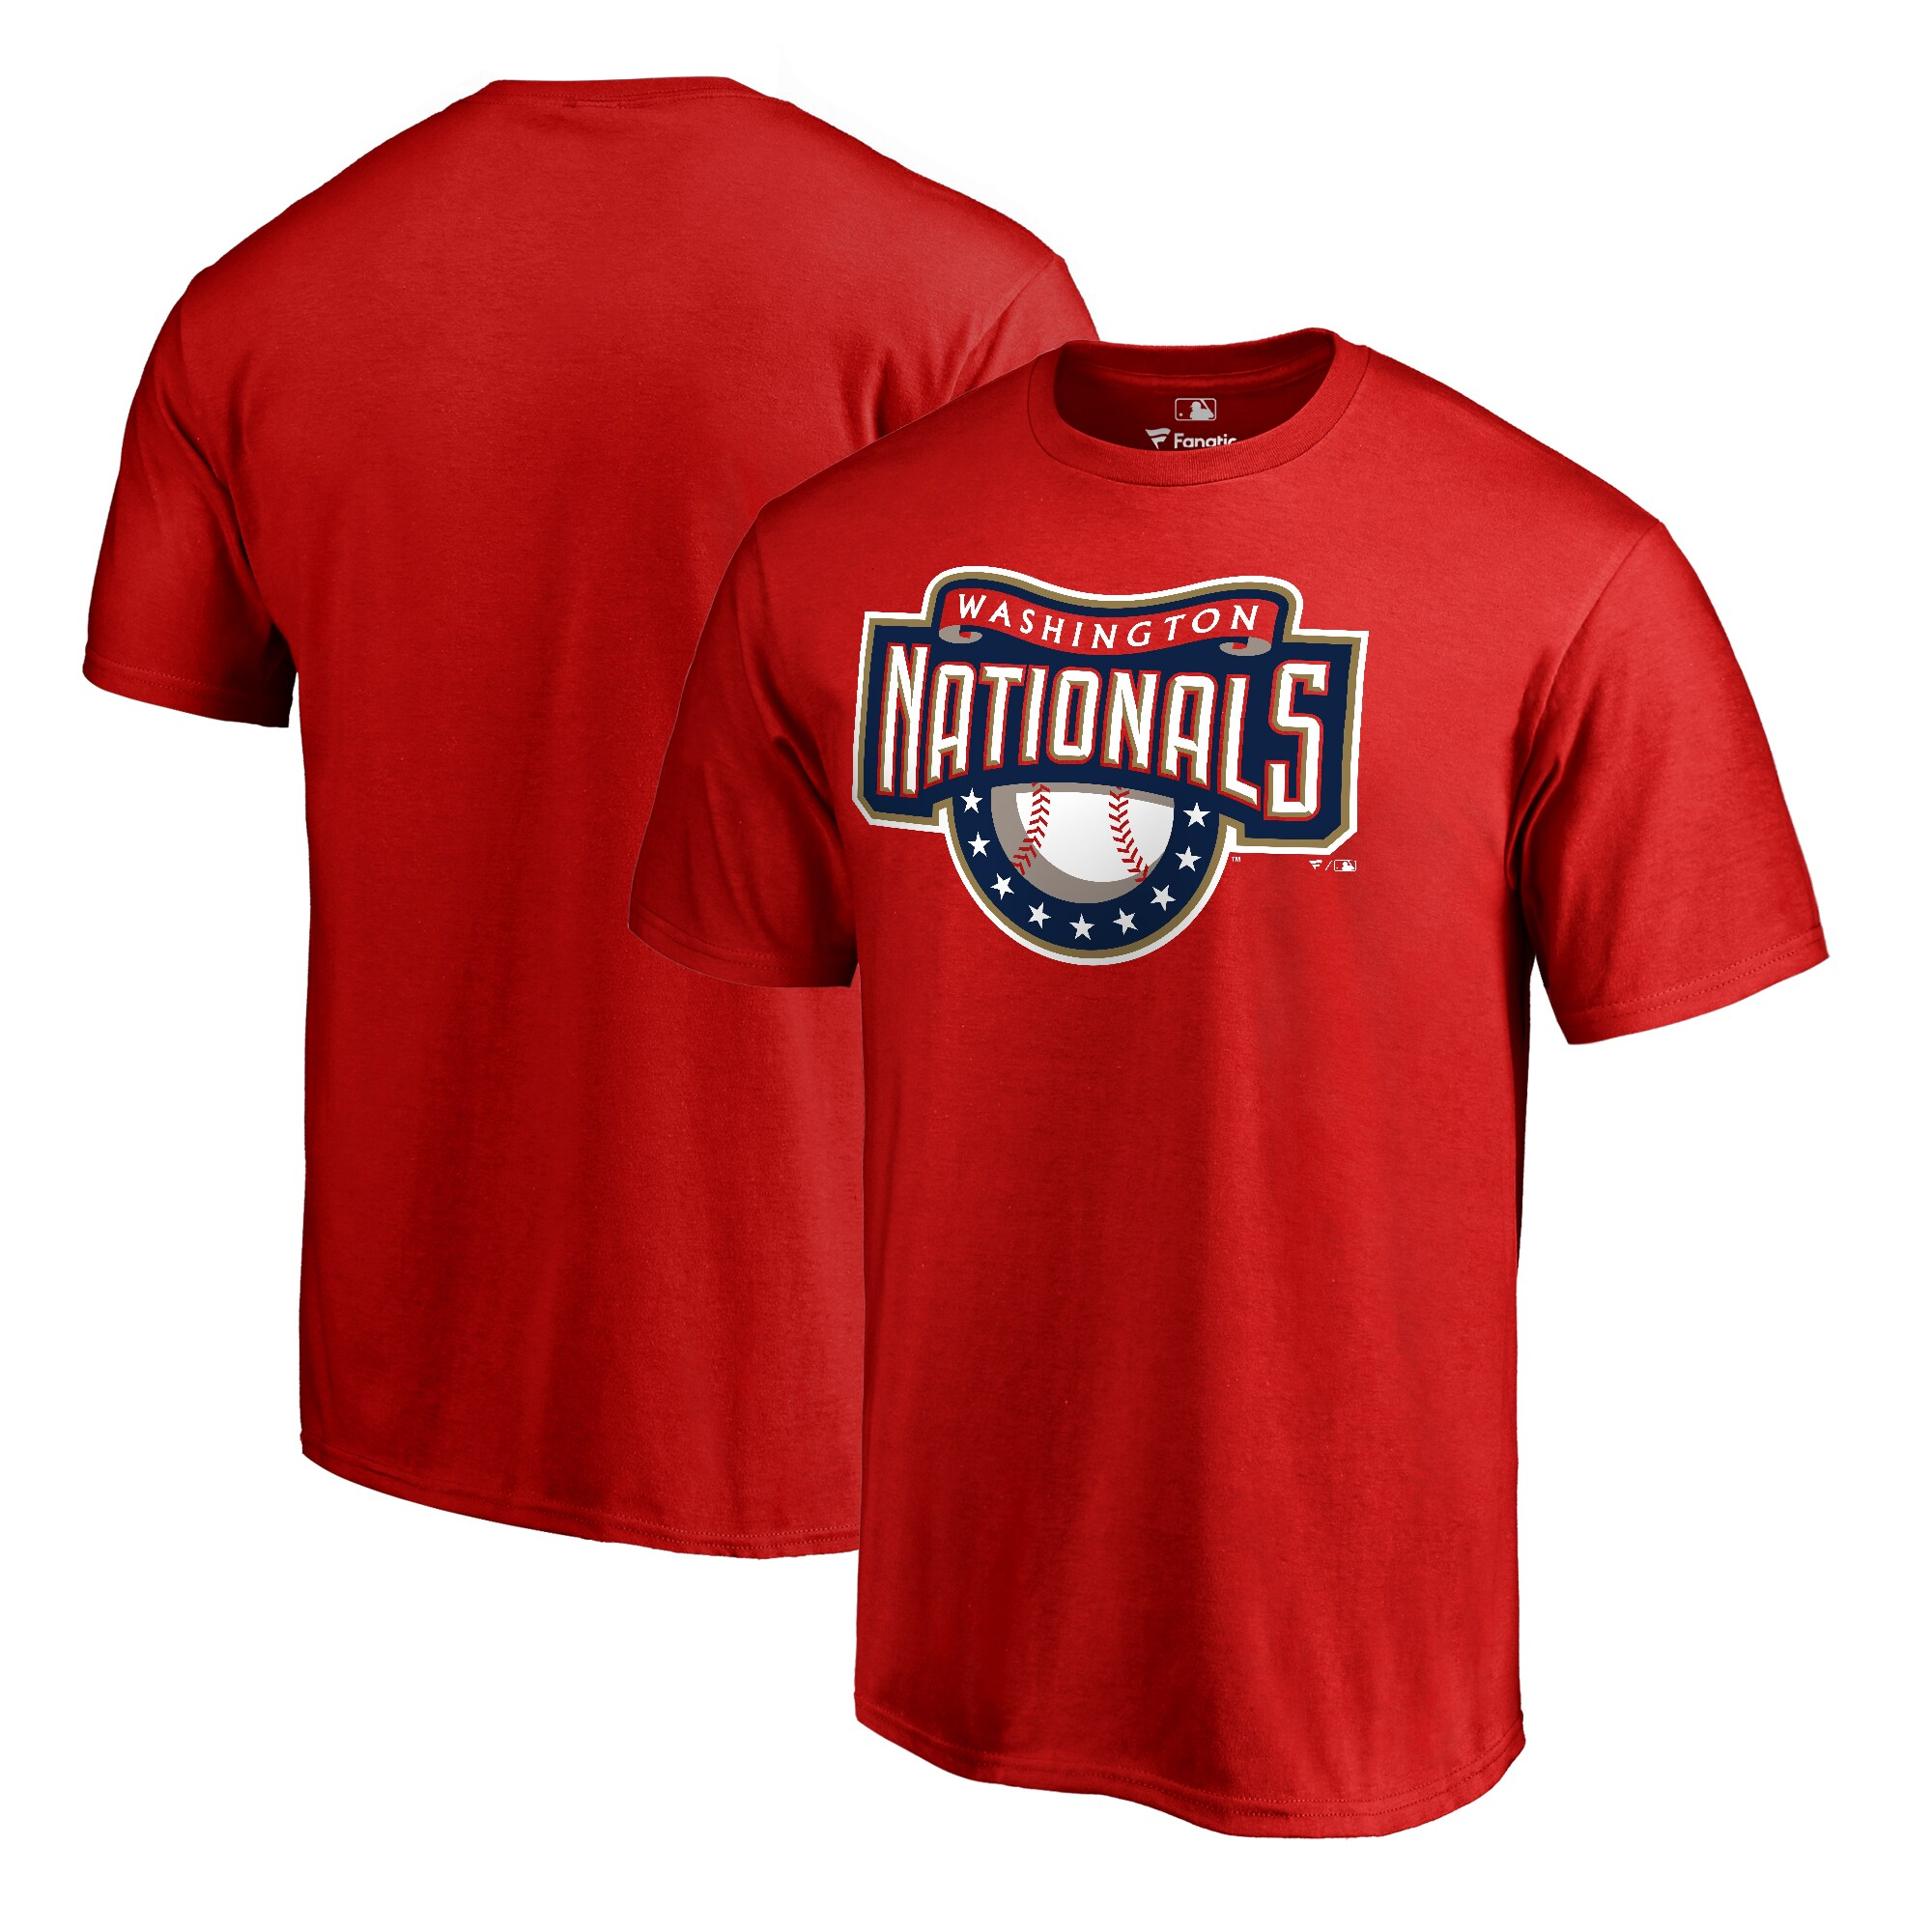 Washington Nationals Fanatics Branded Big & Tall Cooperstown Collection Huntington T-Shirt - Red